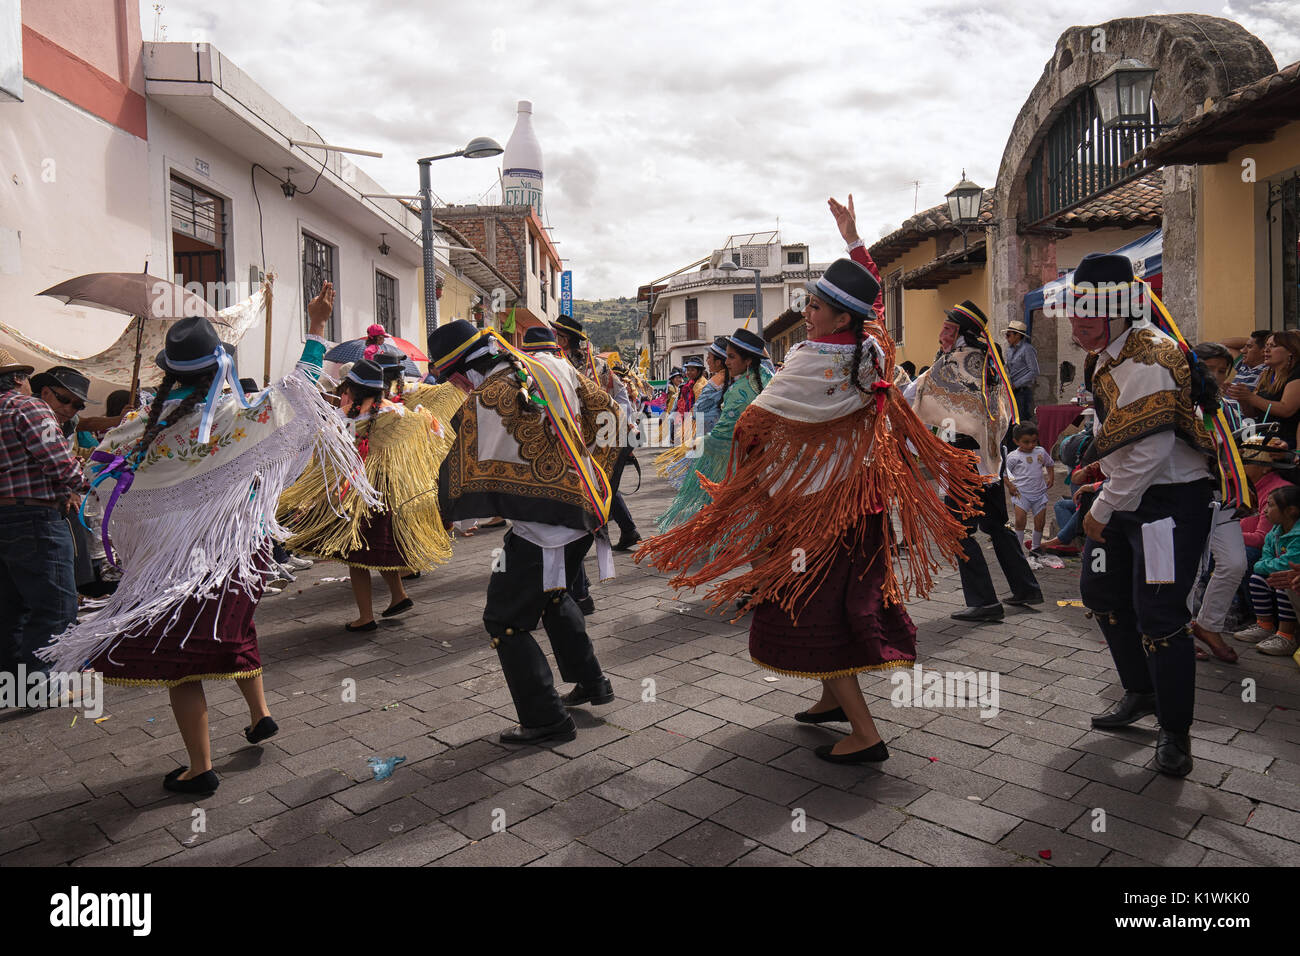 June 17, 2017 Pujili, Ecuador: traditional dancers performing at the Corpus Christi parade - Stock Image